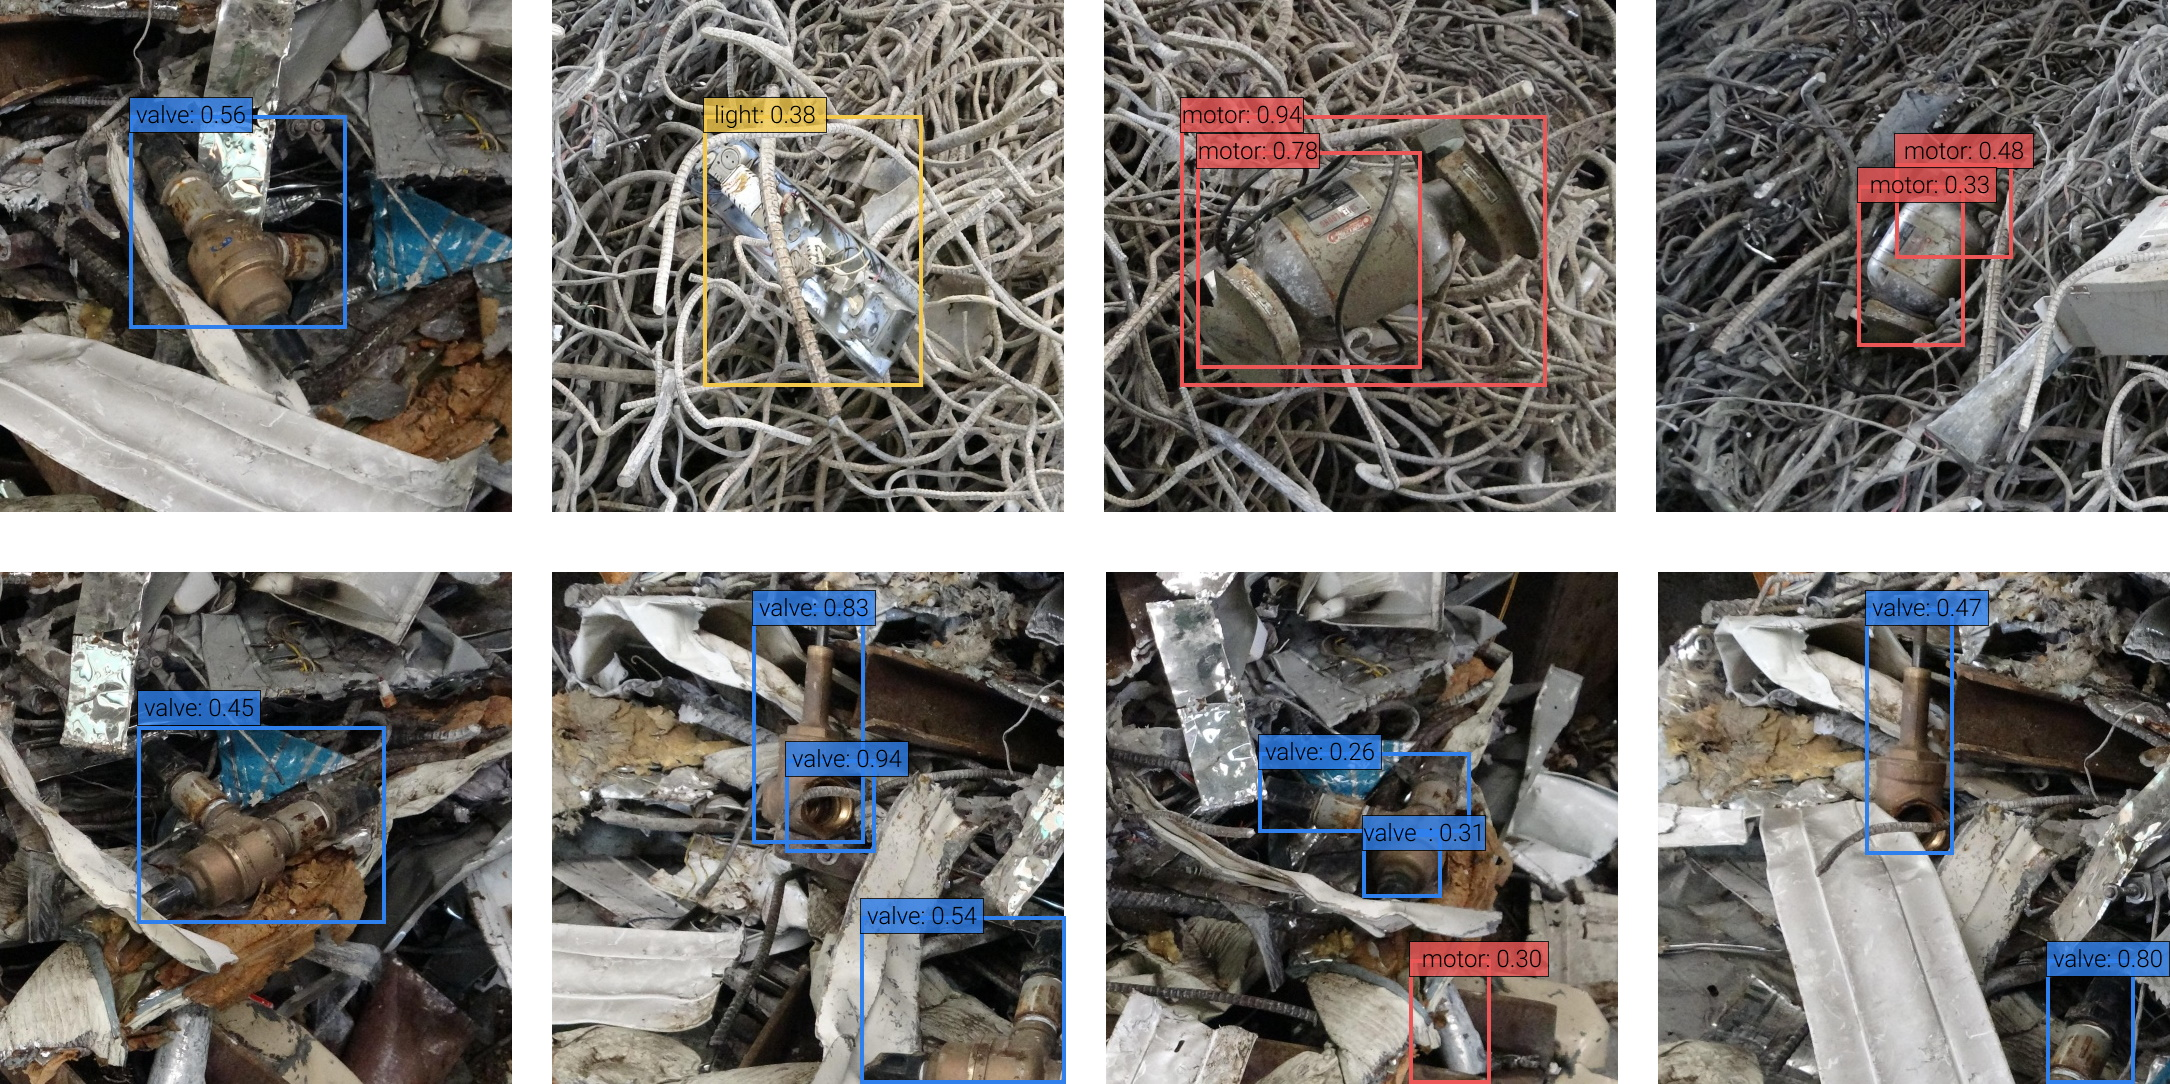 Image connected with scrap metal with AI-detected labels for various kinds of objects overlaid.